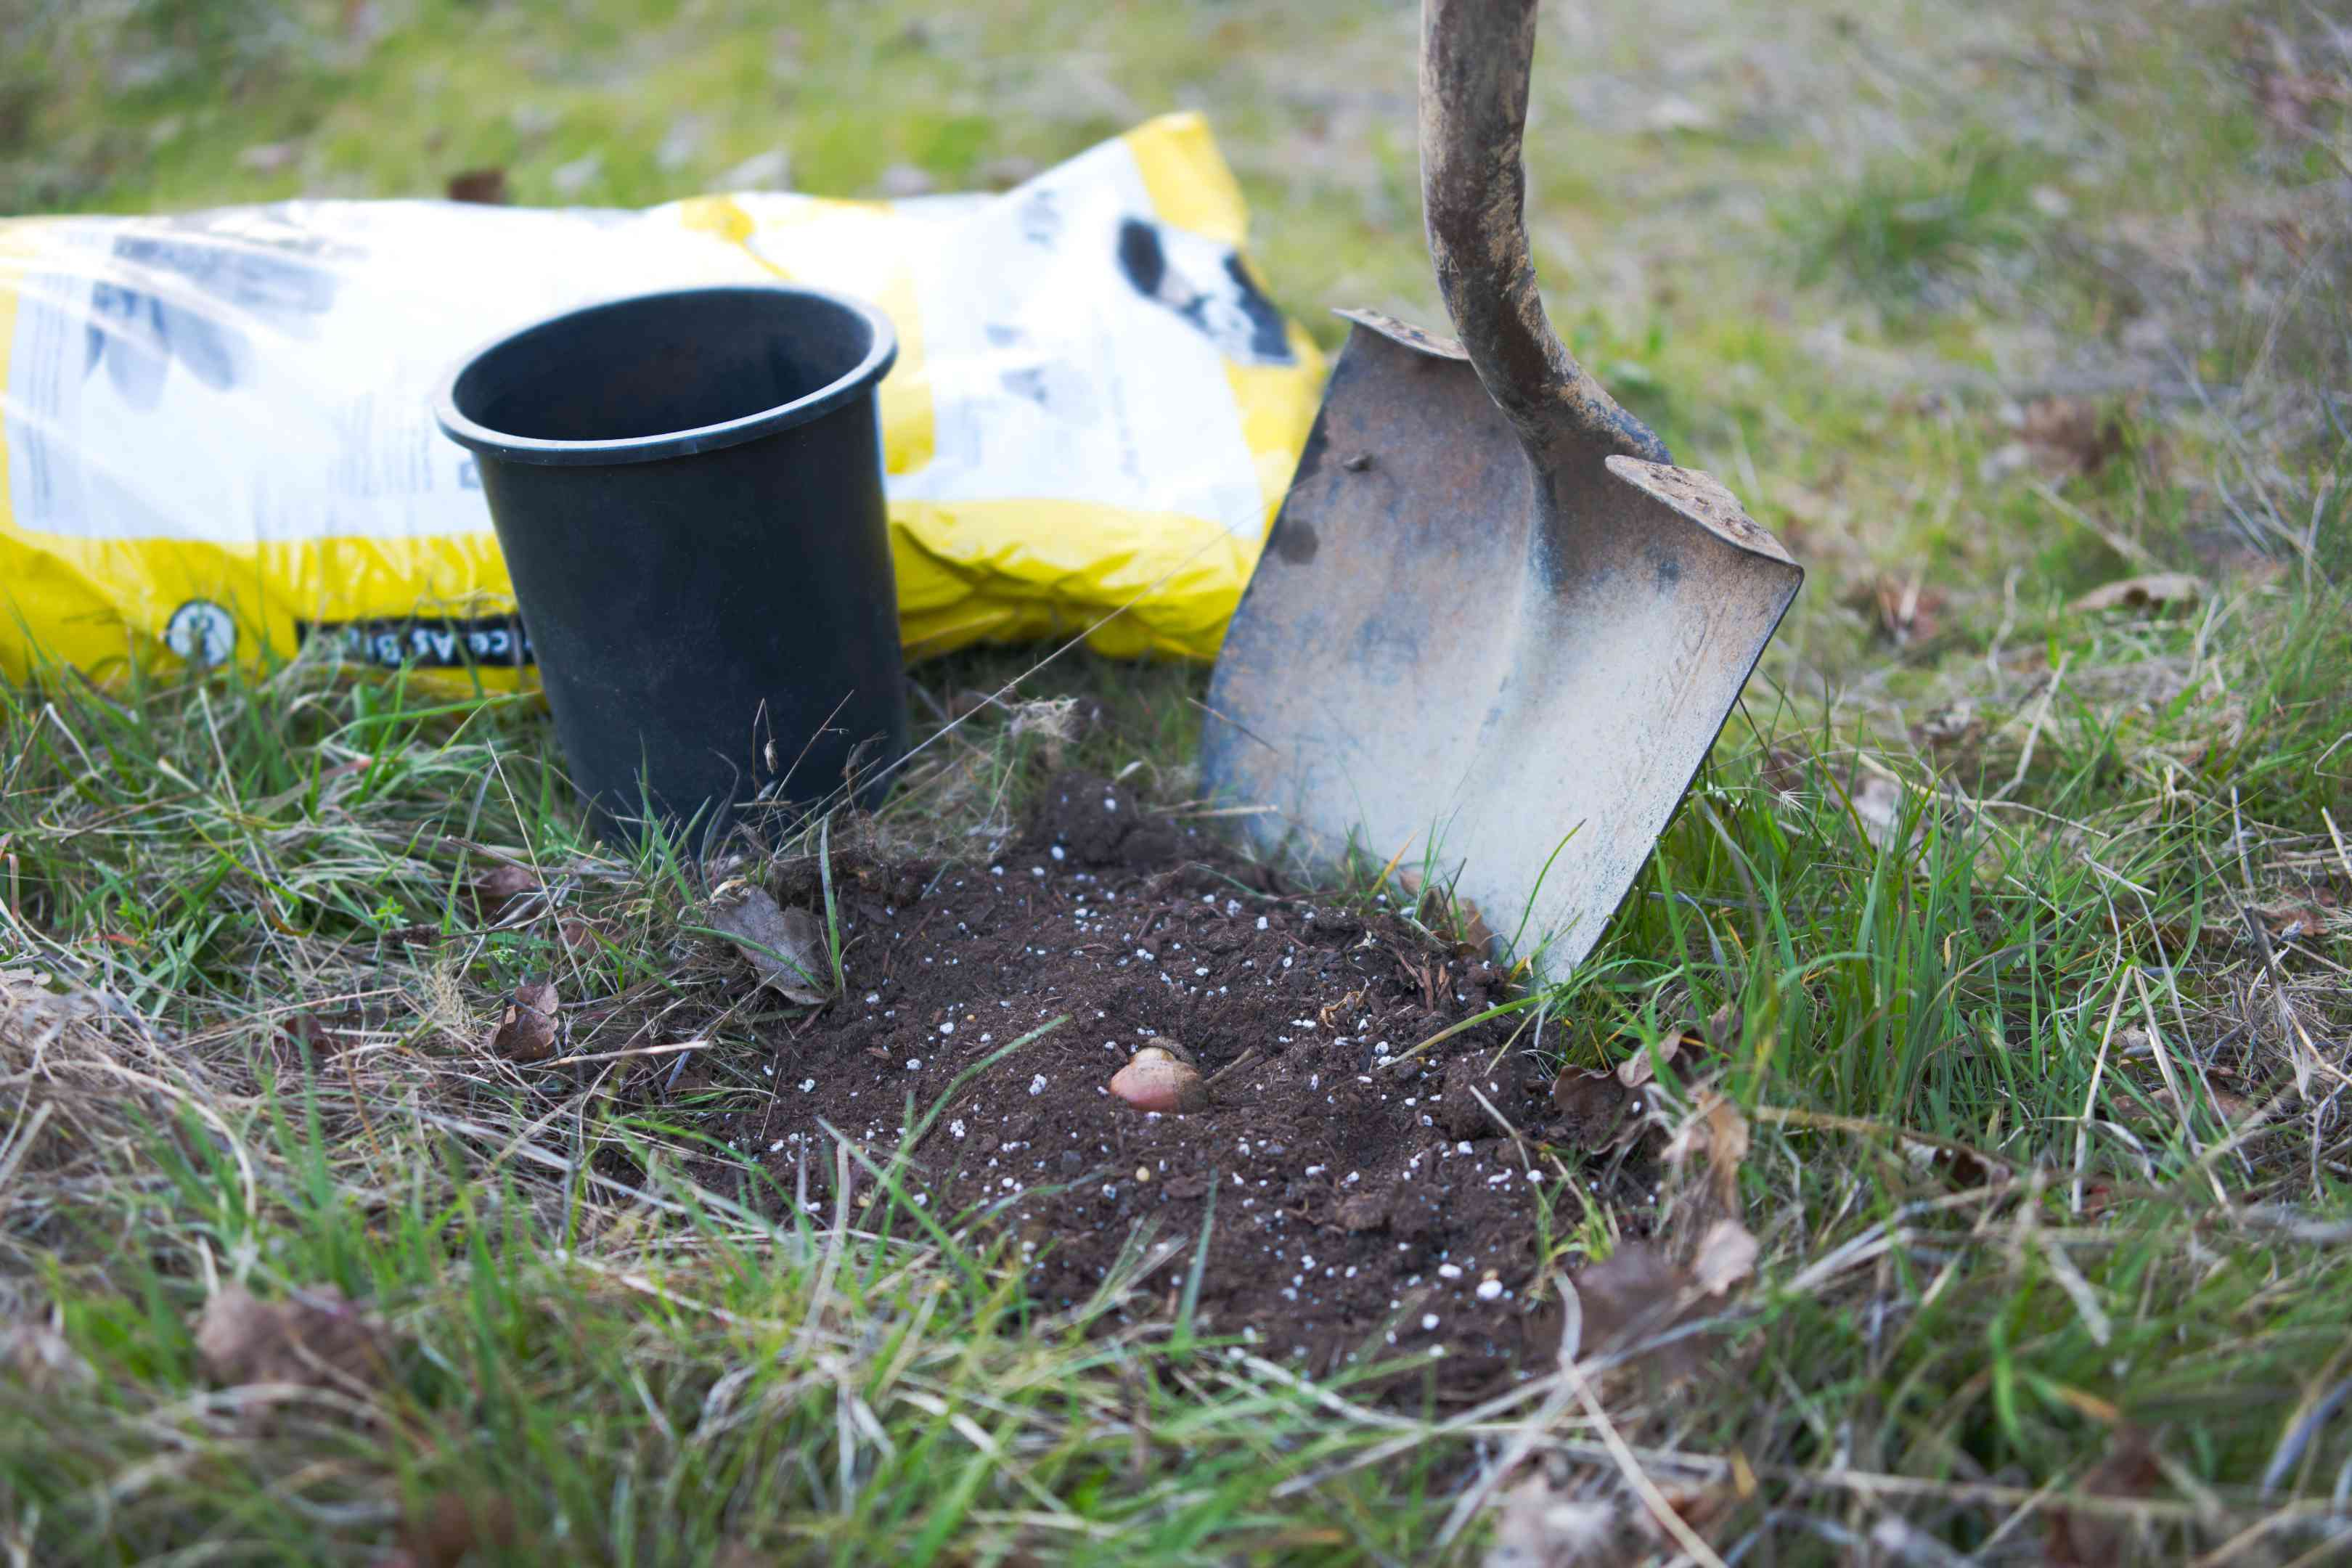 upright shovel in dirt with acorn seed about to be planted next to bag of soil